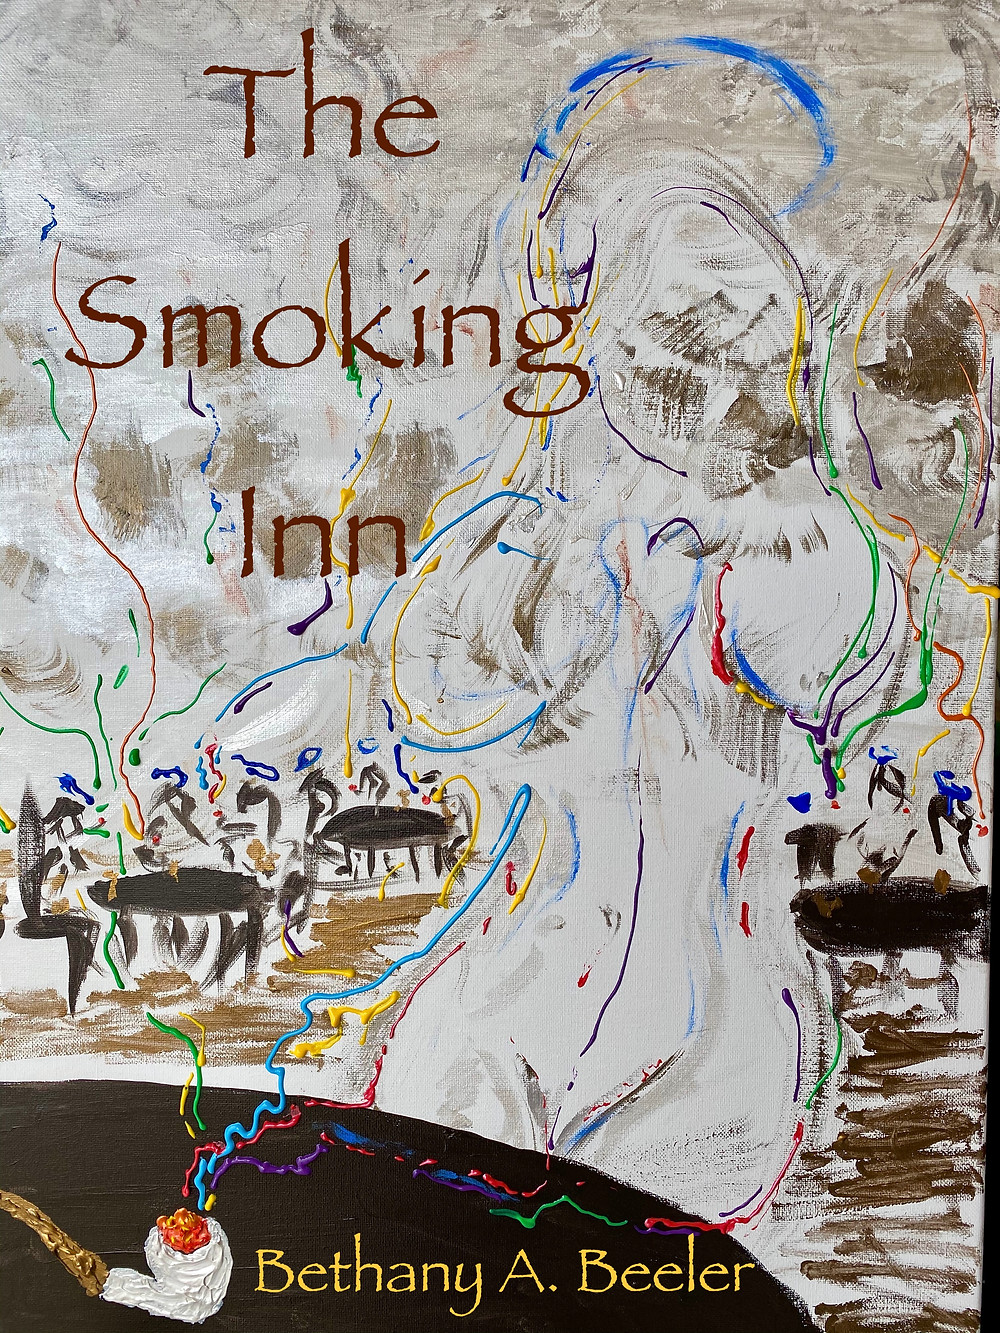 cover of Bethany's upcoming book, The Smoking Inn